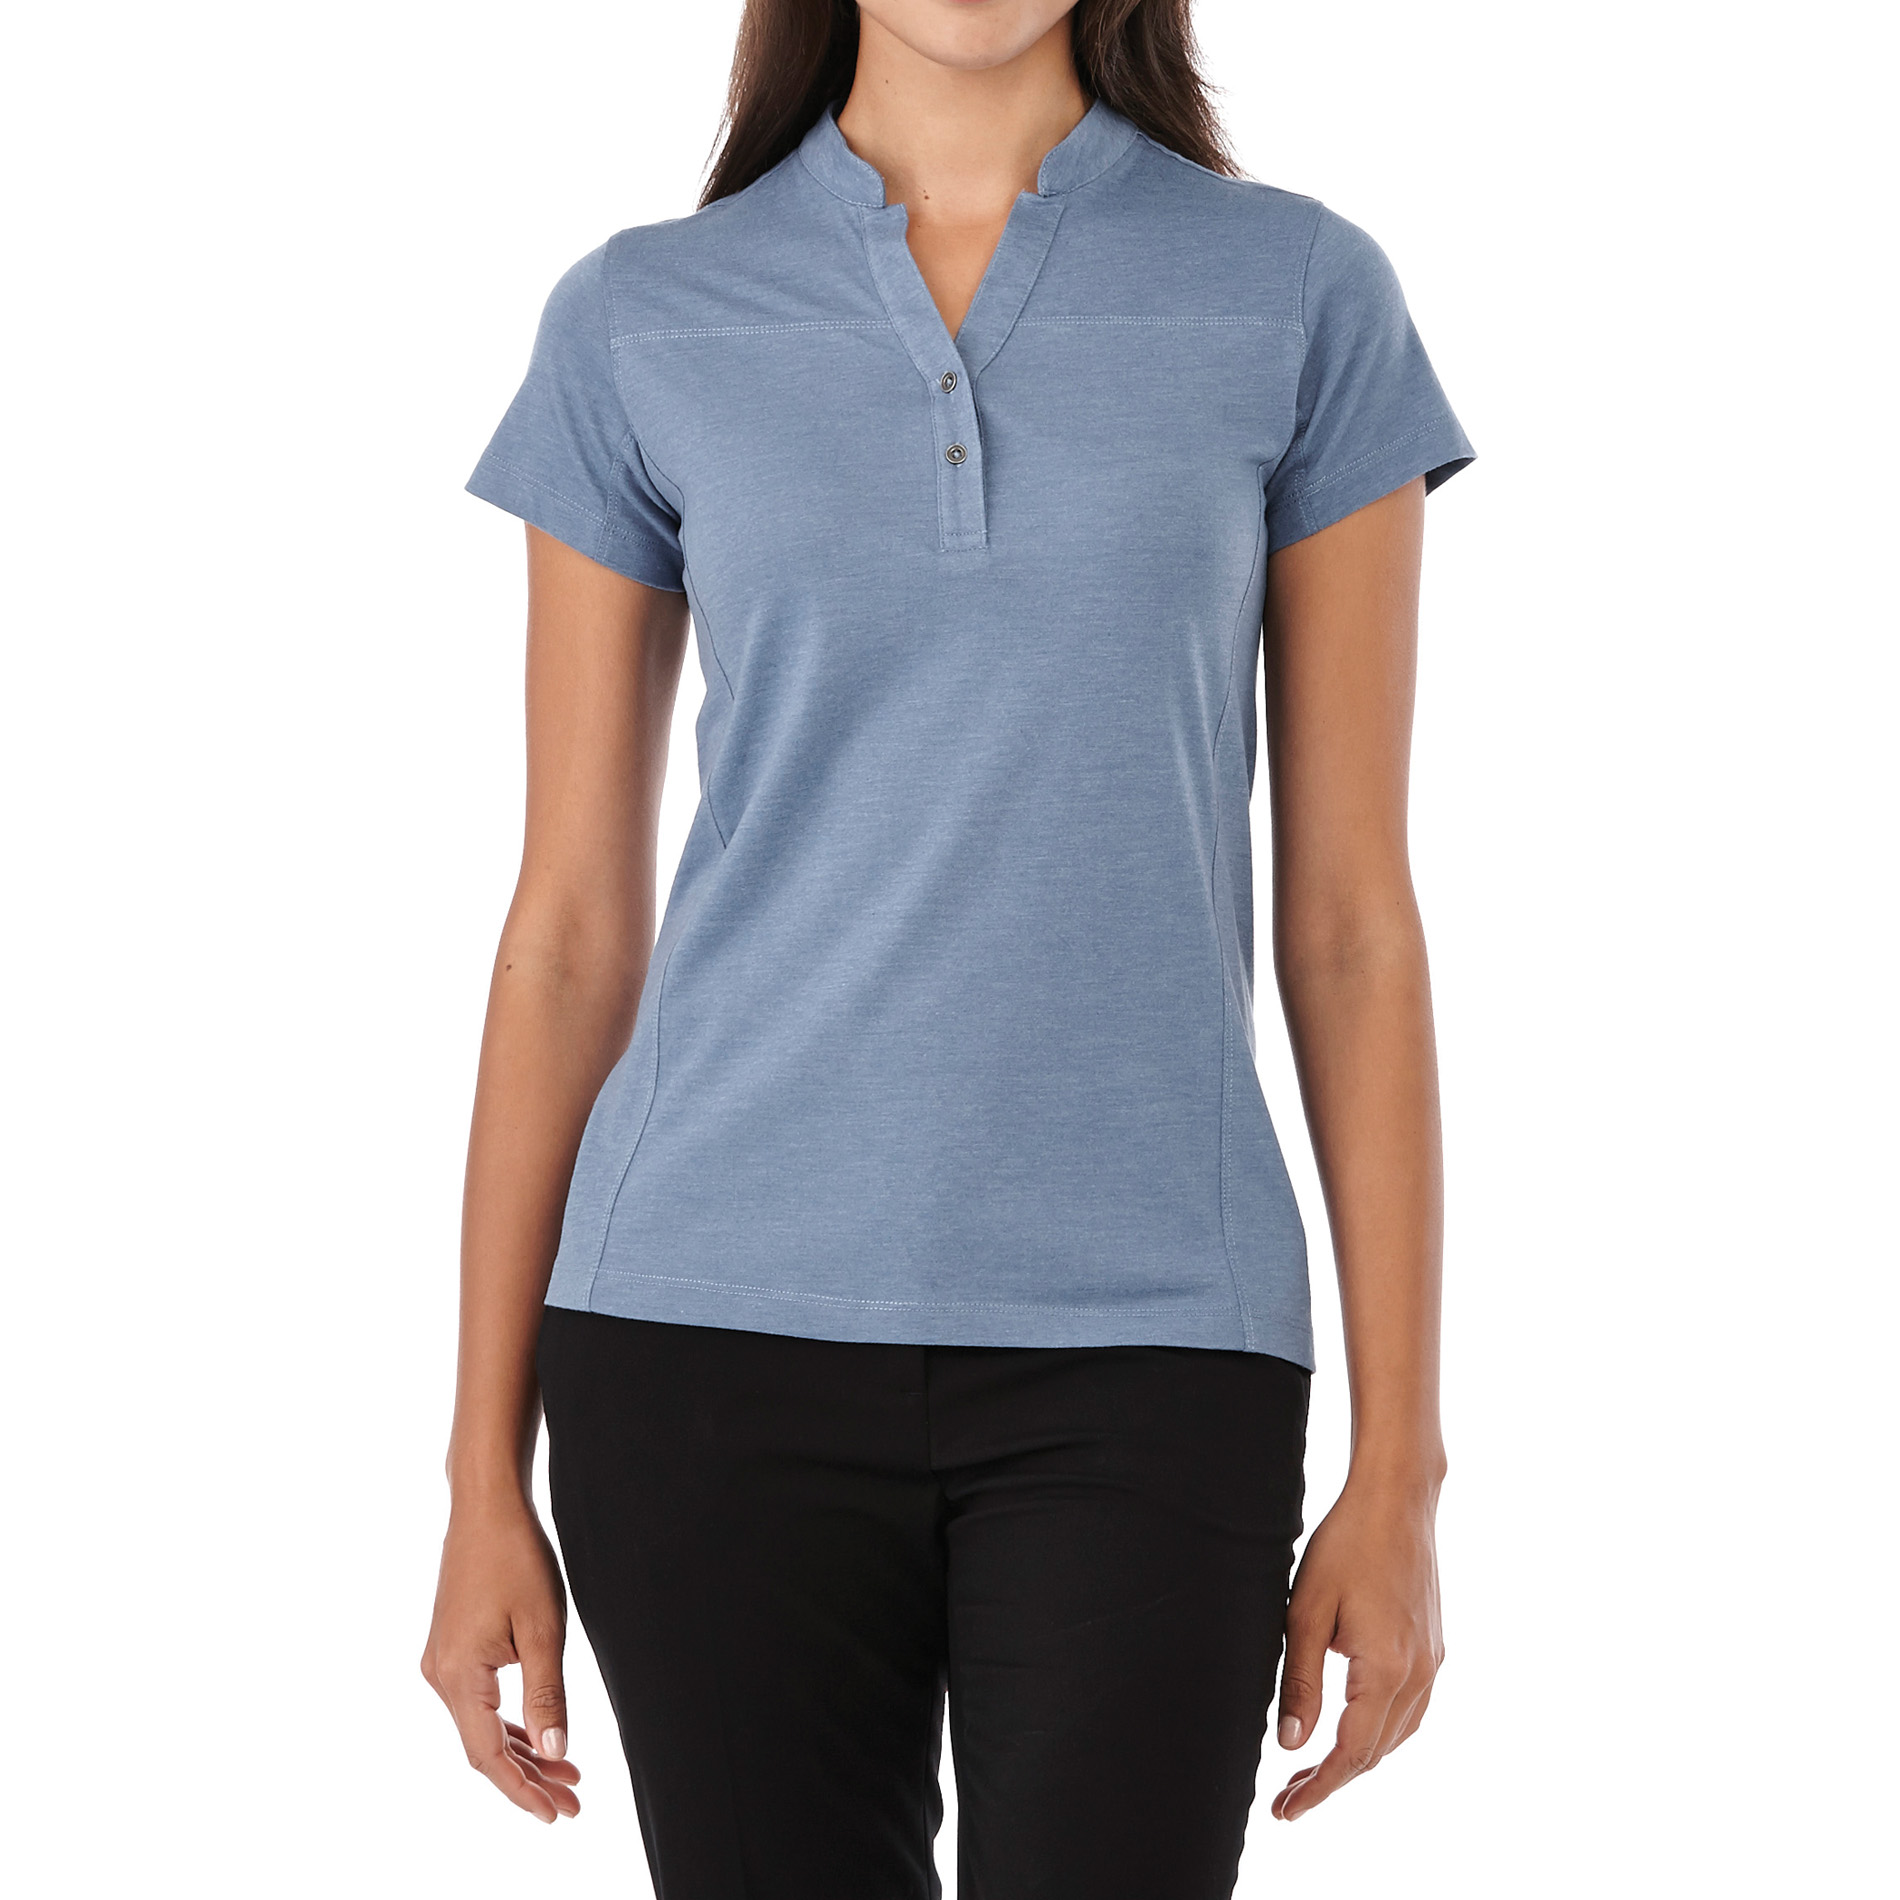 Elevate TM96611 - Women's CONCORD Short Sleeve Polo